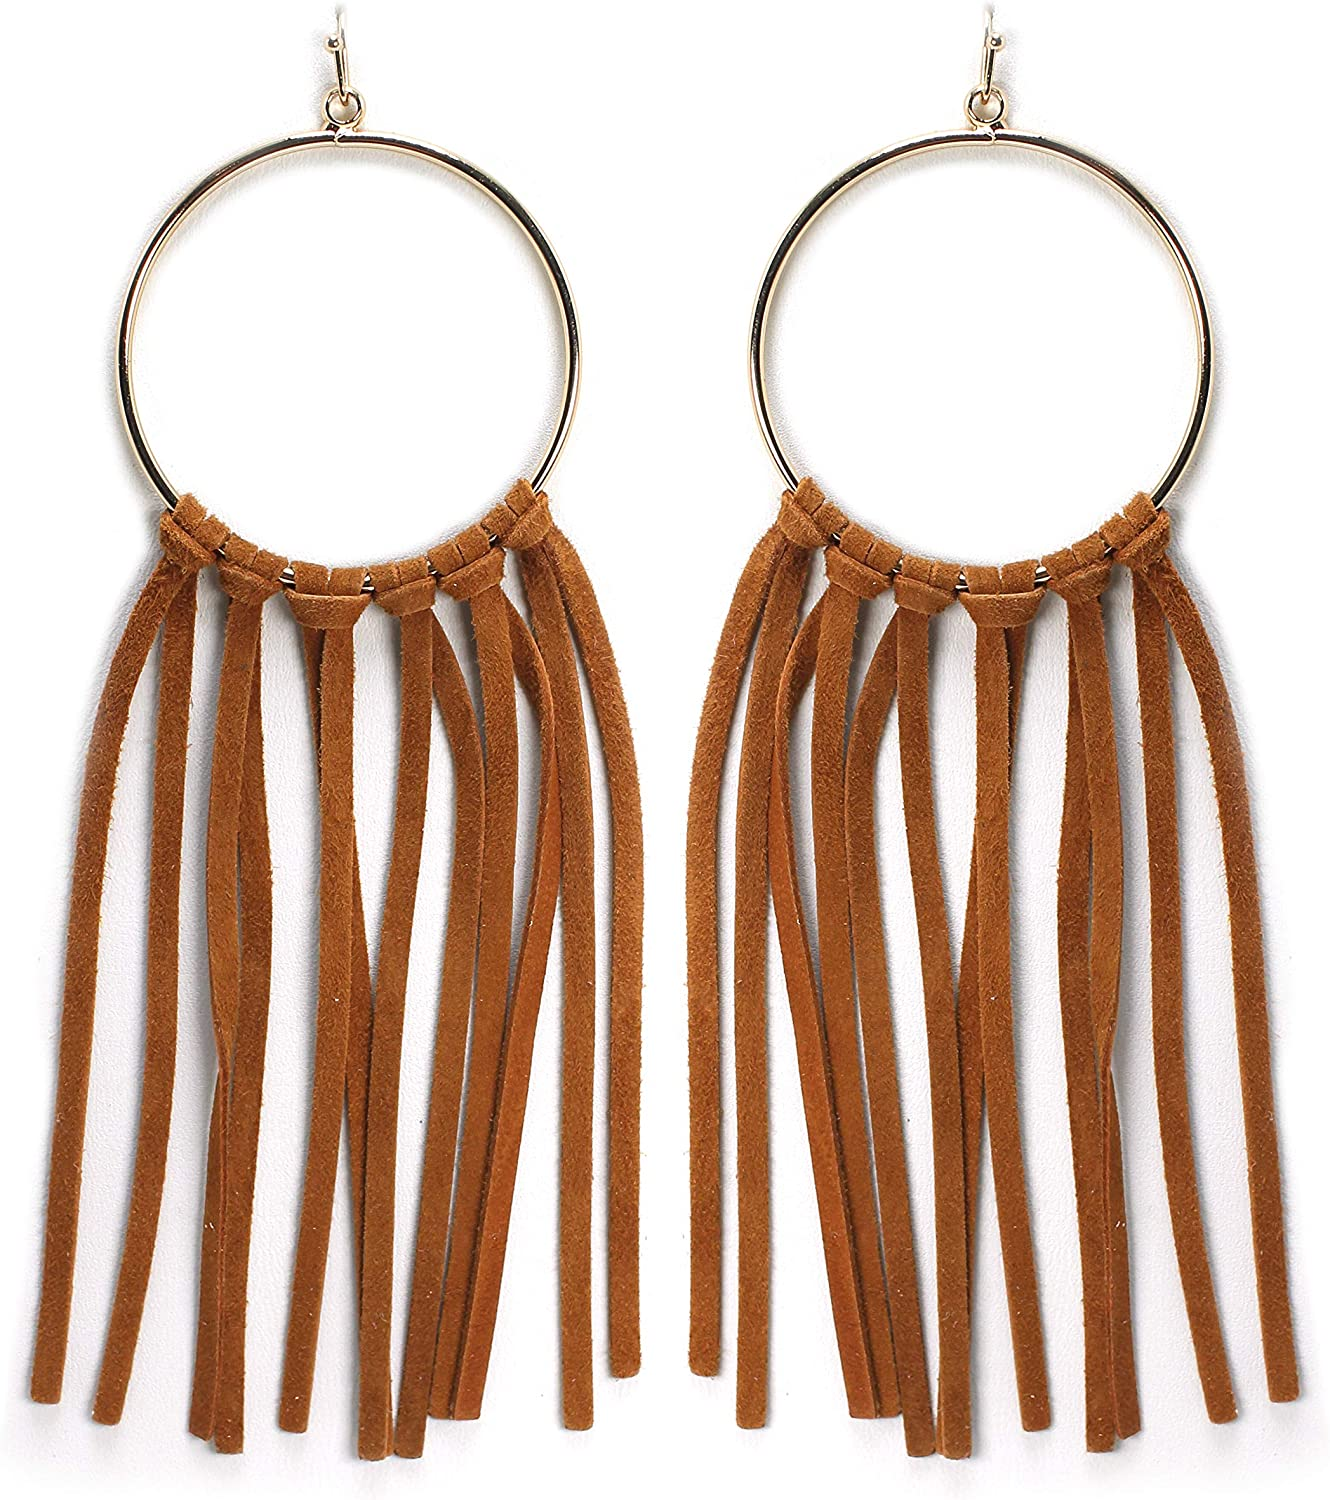 Miracle Collection Bohemian Statement Light Weight Round Hoop With Genuine Suede Leather Fringe Tassel Fashion Earring for Women and Girls